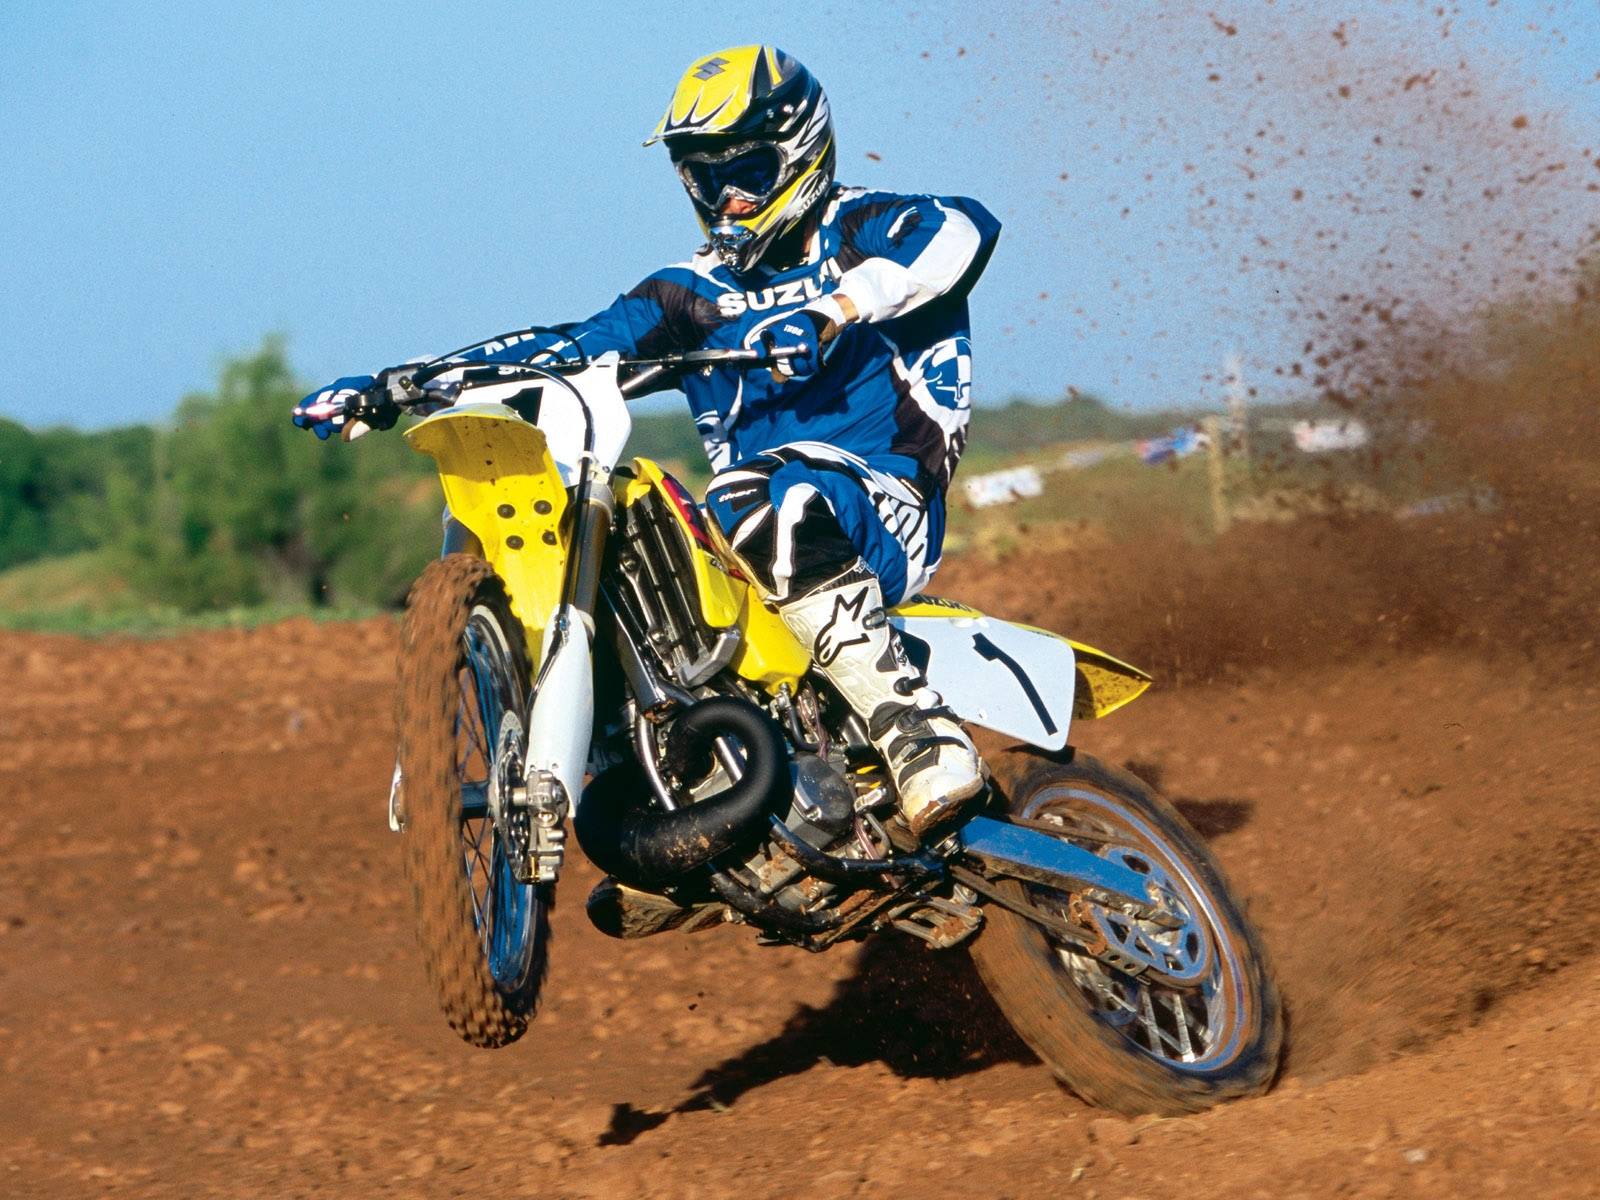 Suzuki motorcycle, racing, jumping 1600x1200 wallpaper